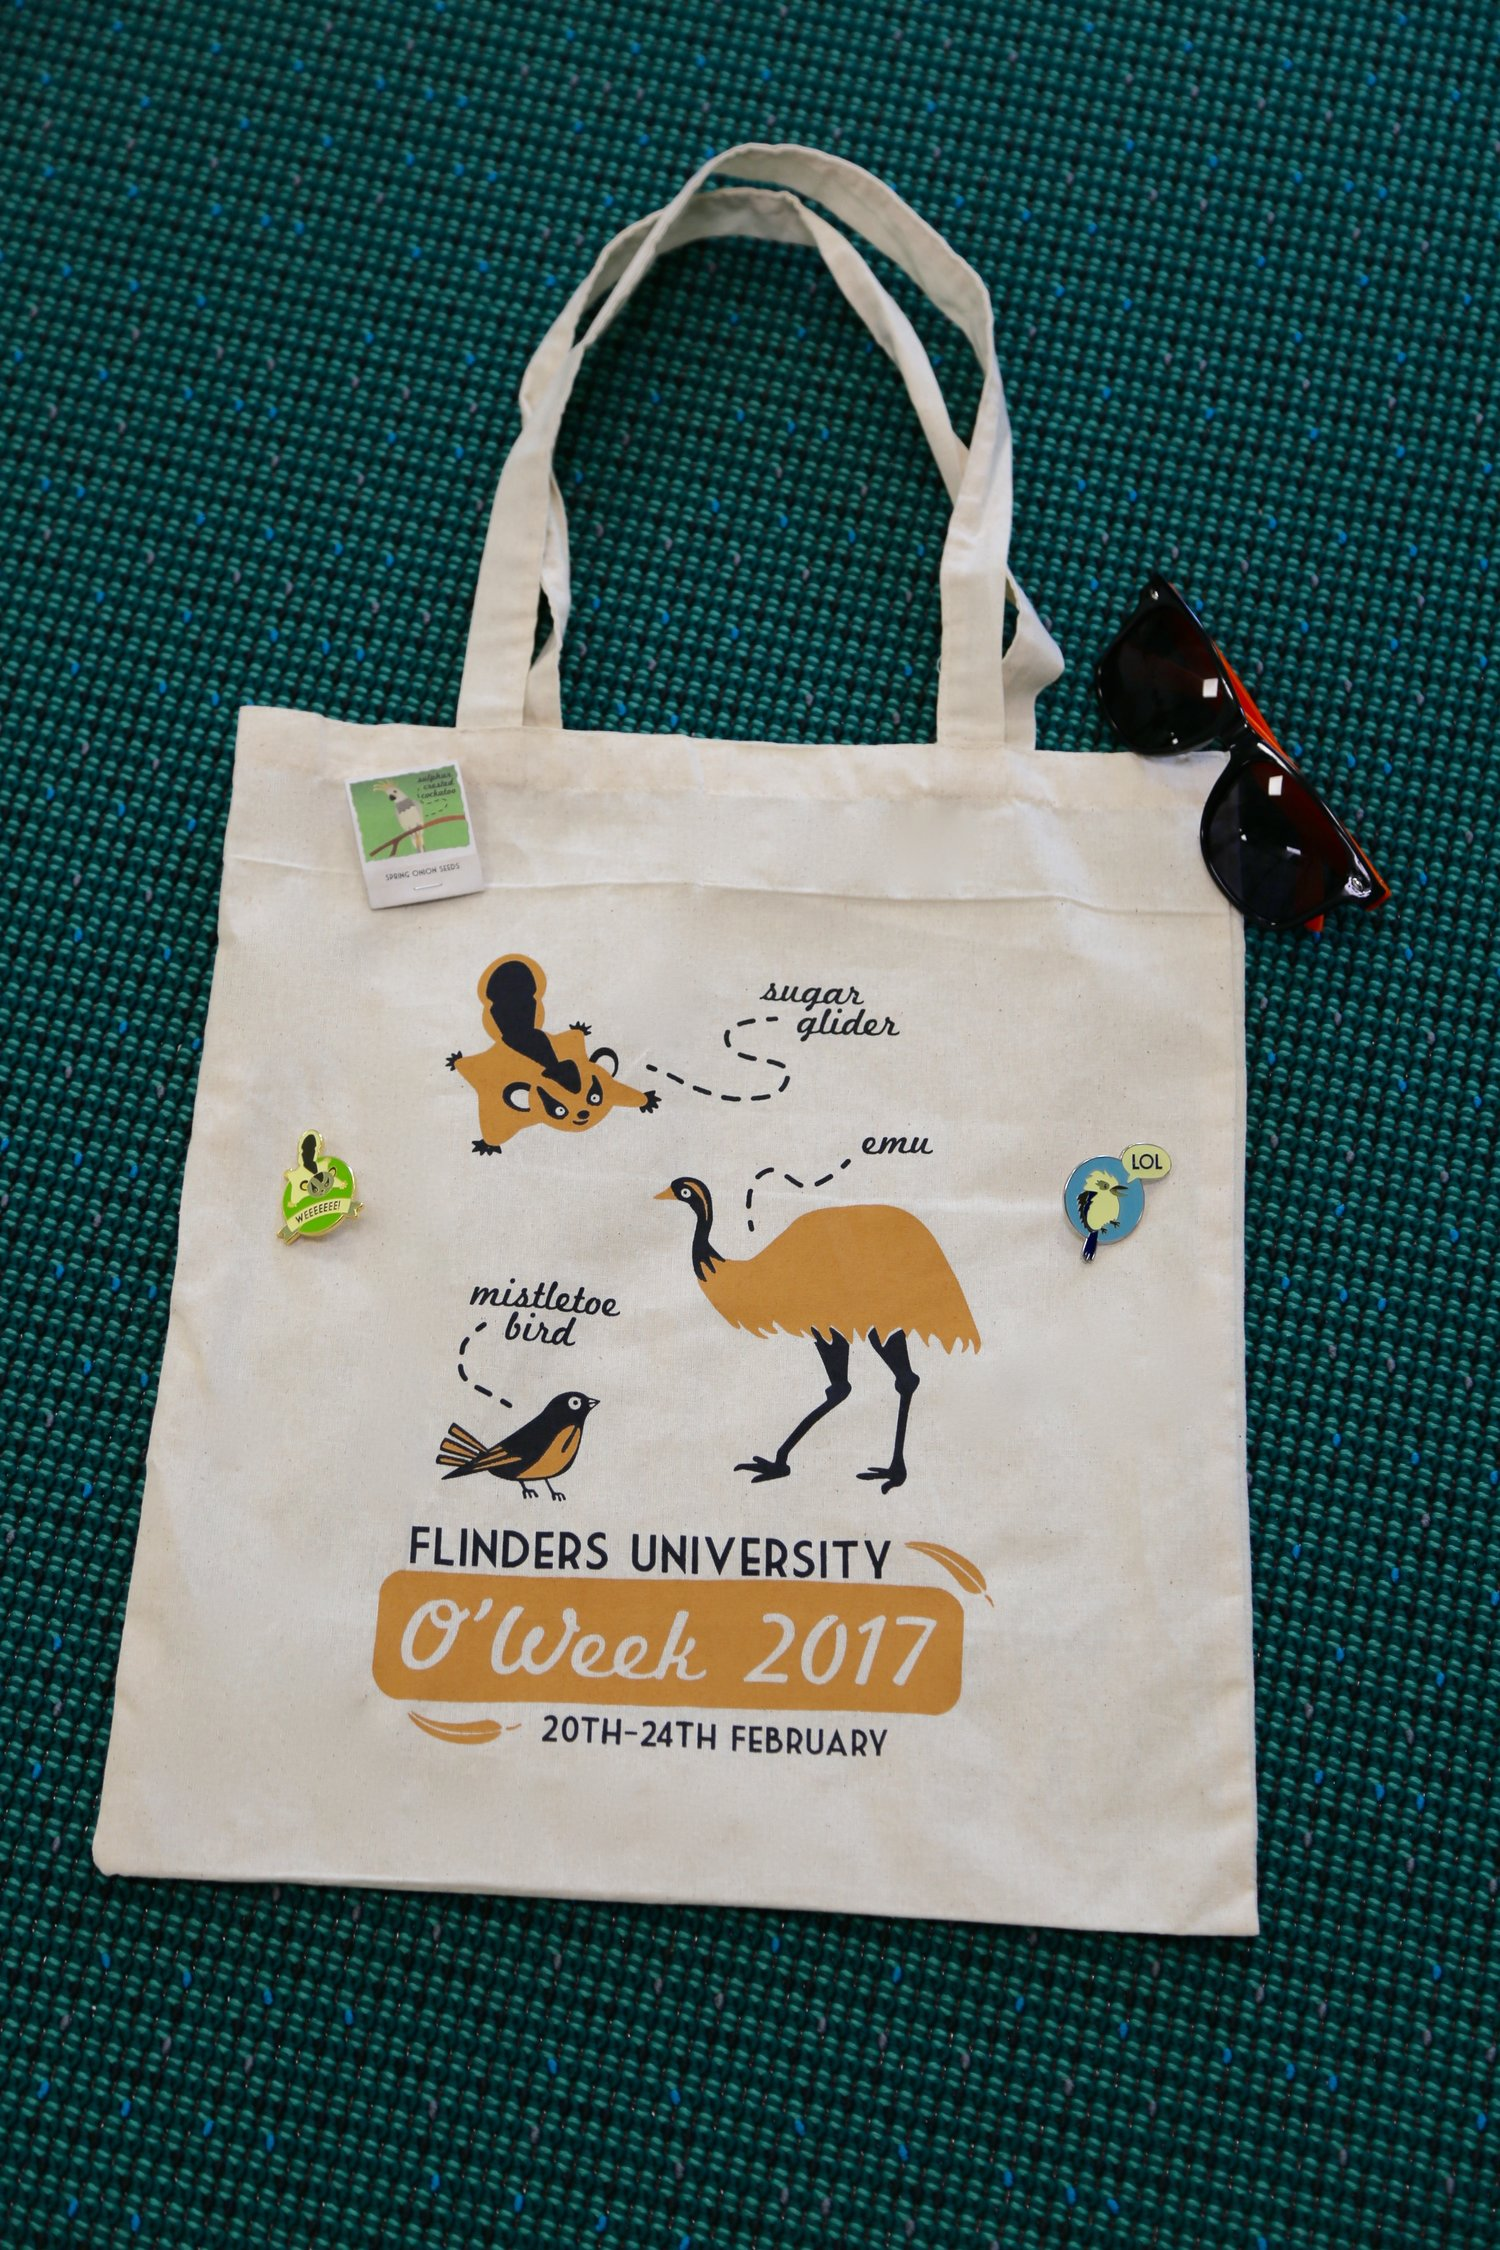 Flinders O'Week promo graphics and items